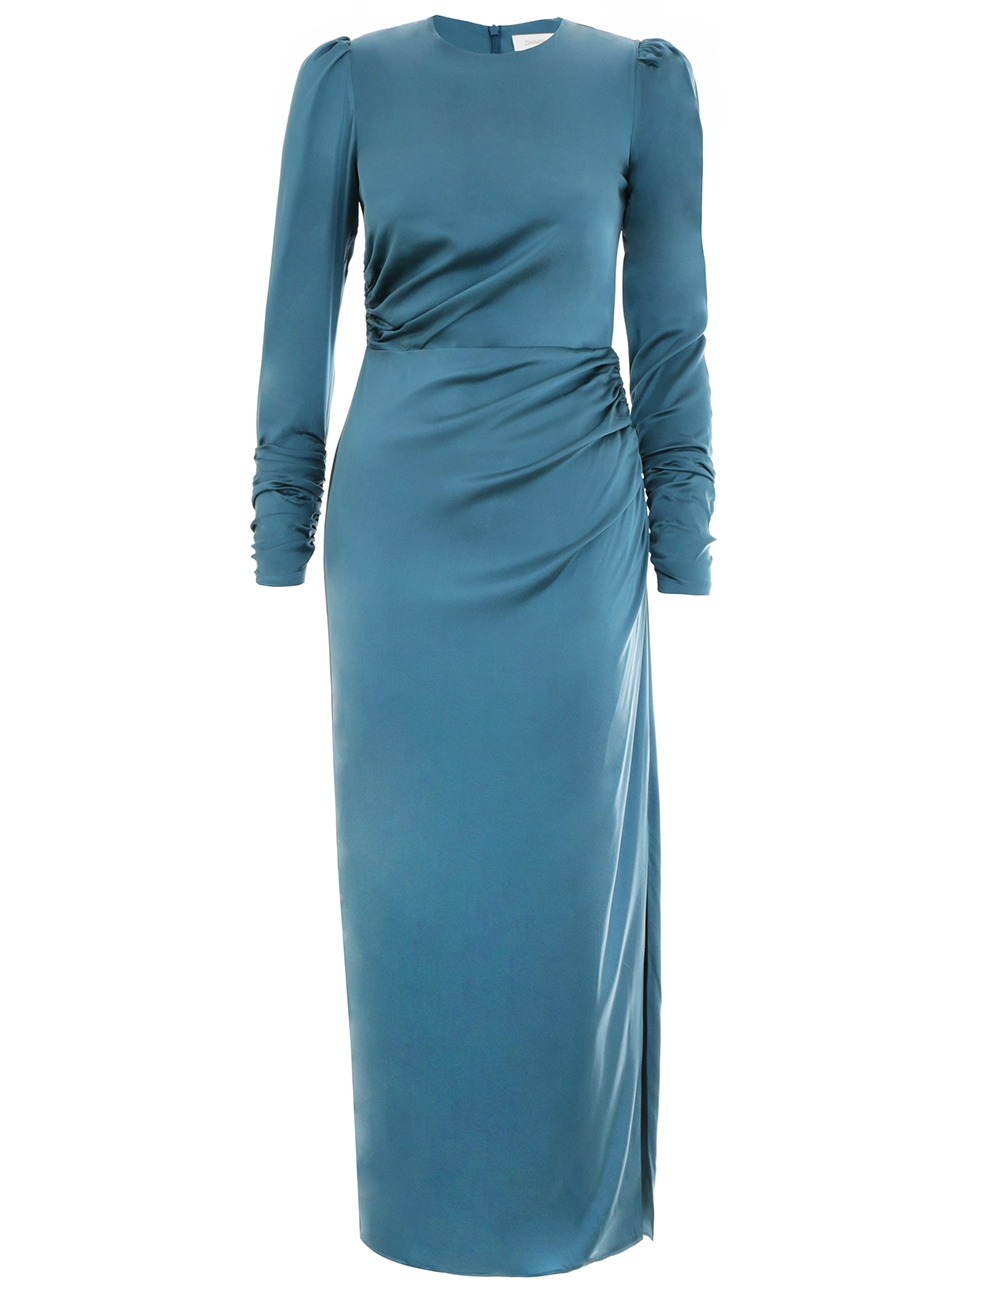 208d6a795248 1.5148drnin.teal.teal-ruched-drape-dress -flat.jpg?width=500&height=645&canvas=500:645&quality=100&bg-color=255,255,255&fit=bounds